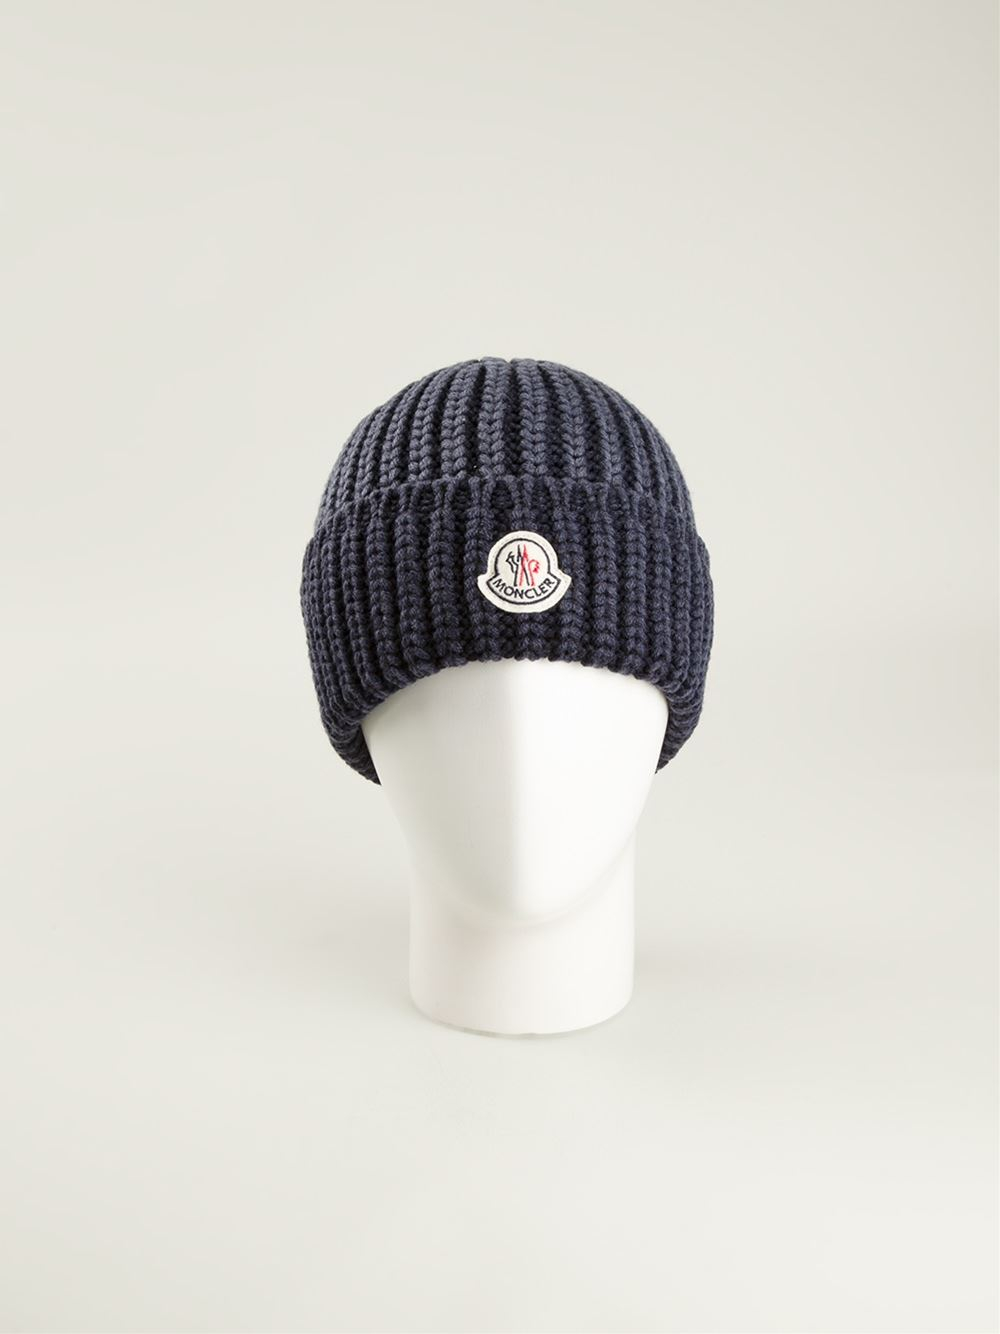 Lyst - Moncler Ribbed Beanie in Blue for Men 1ed08c6650f